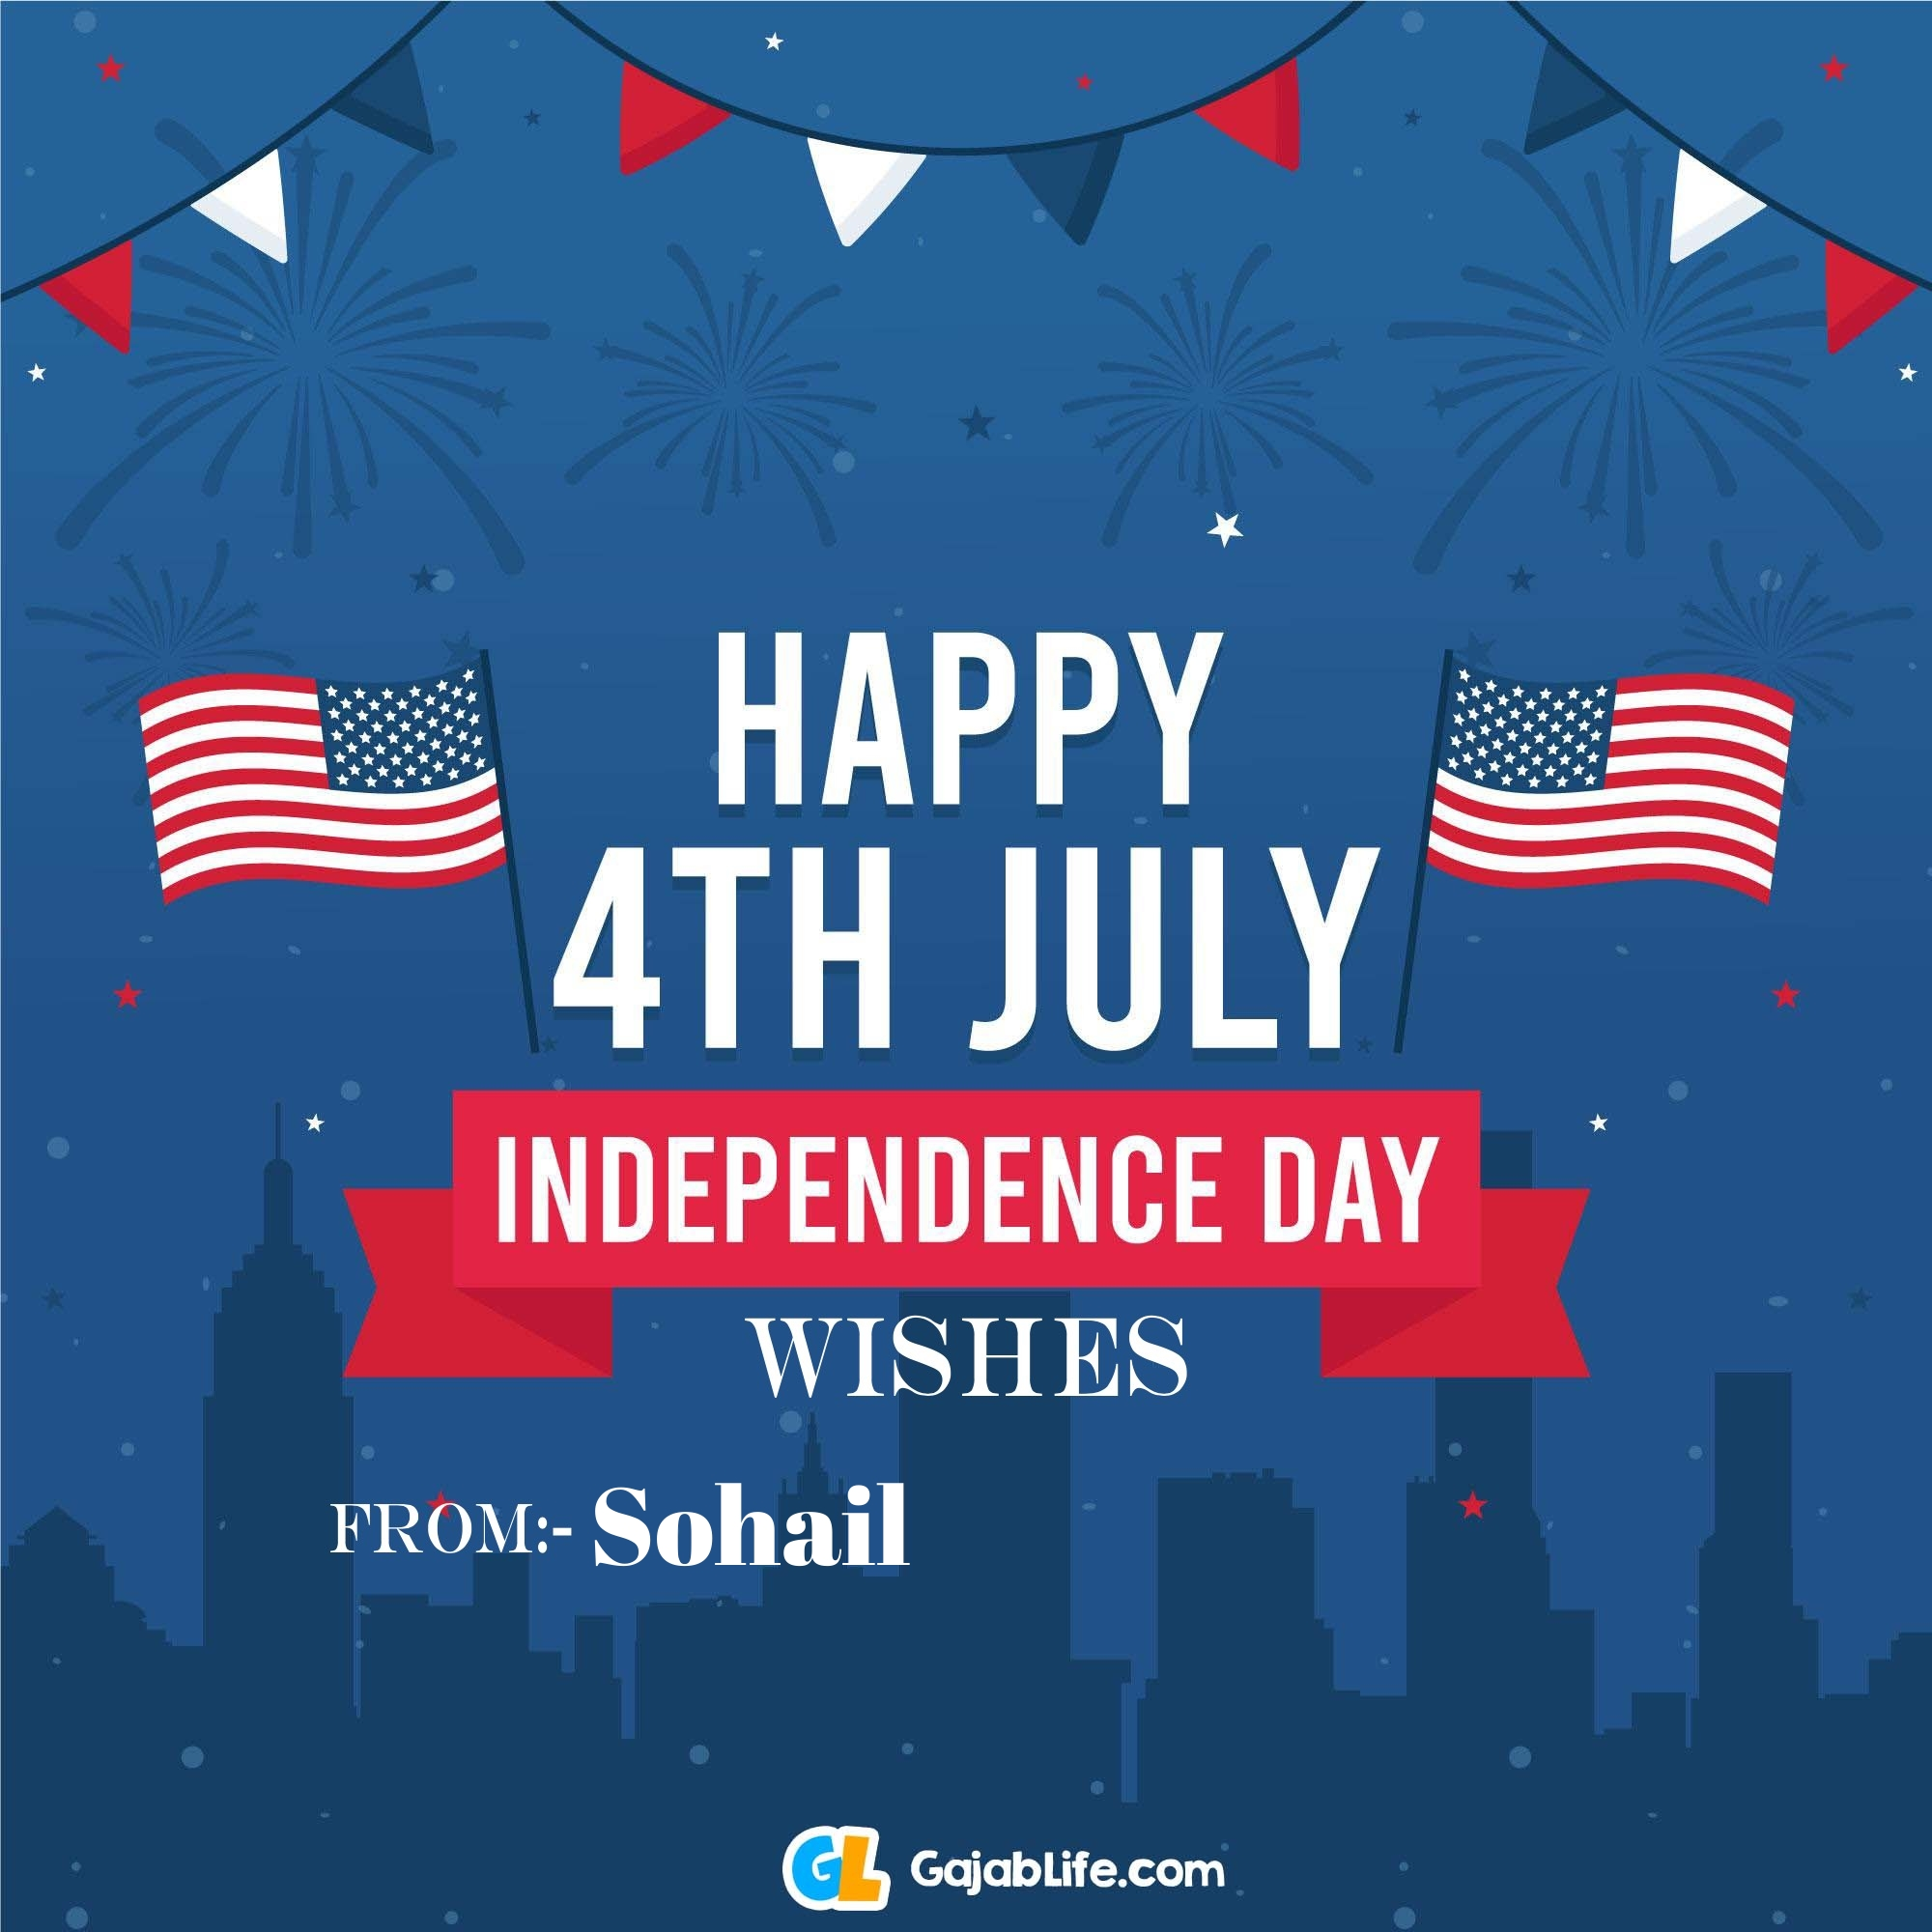 Sohail happy independence day united states of america images